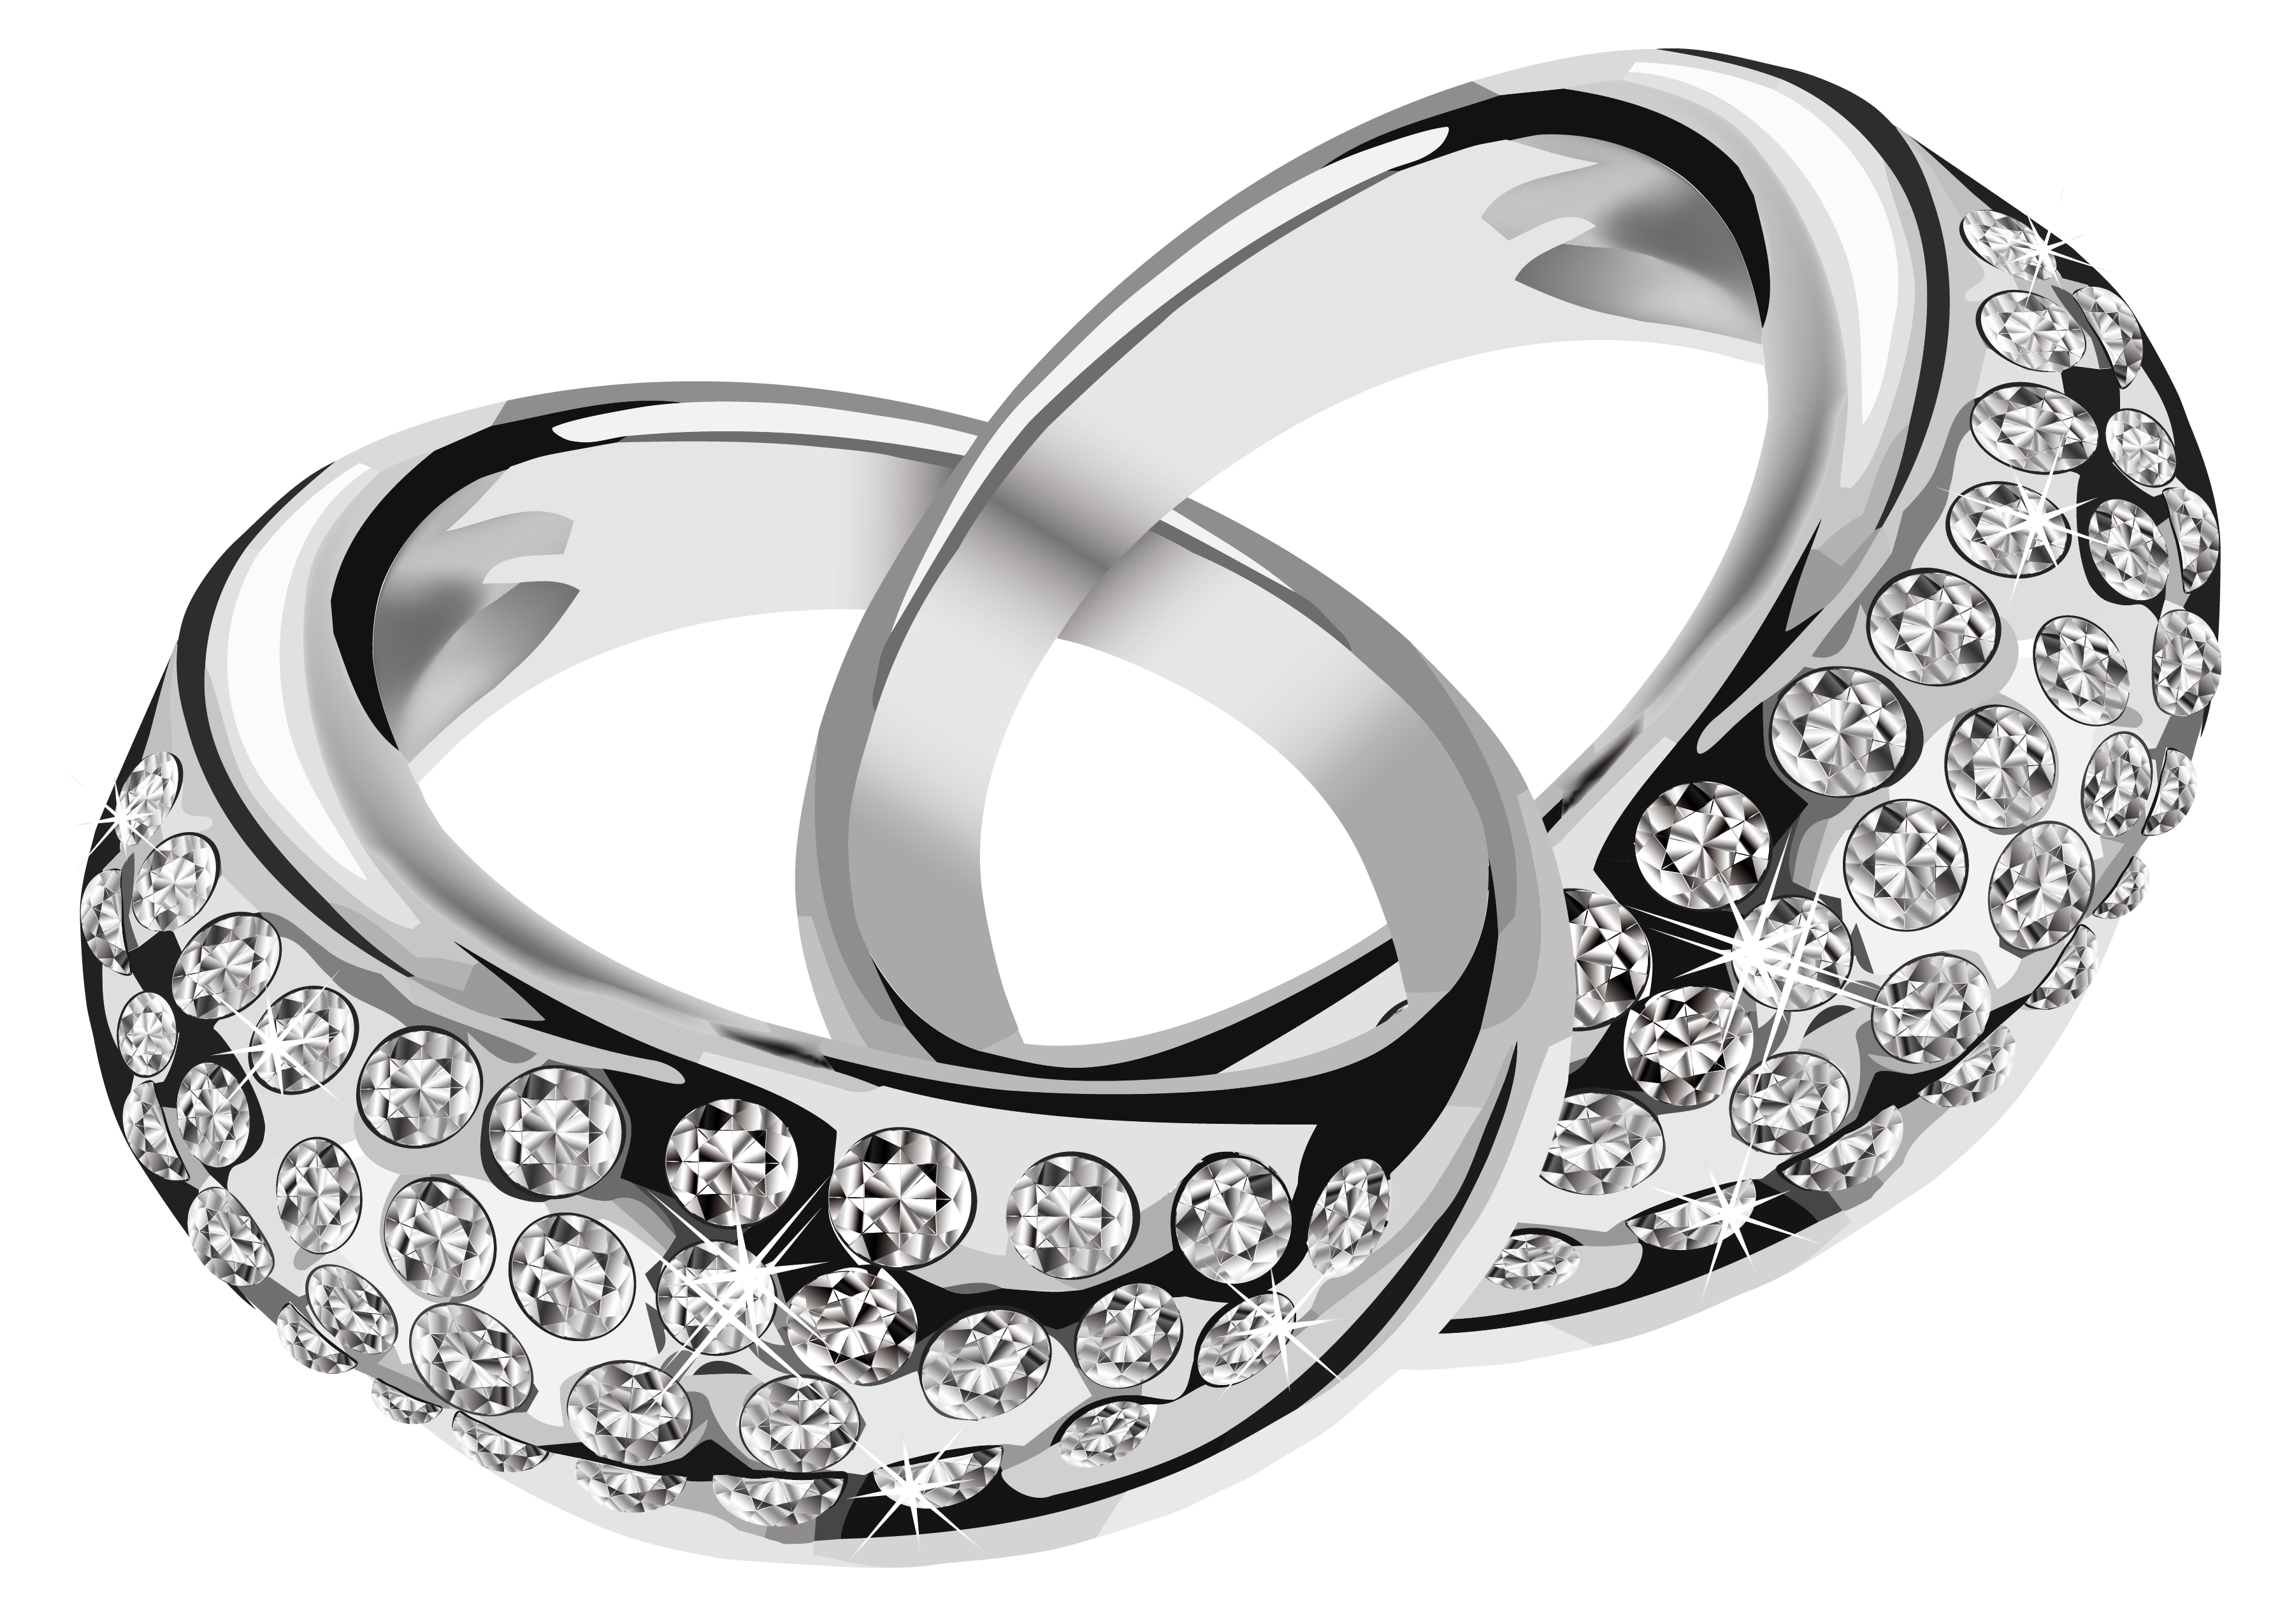 clip art royalty free stock Wedding rings black and white clipart. Pin by nick smith